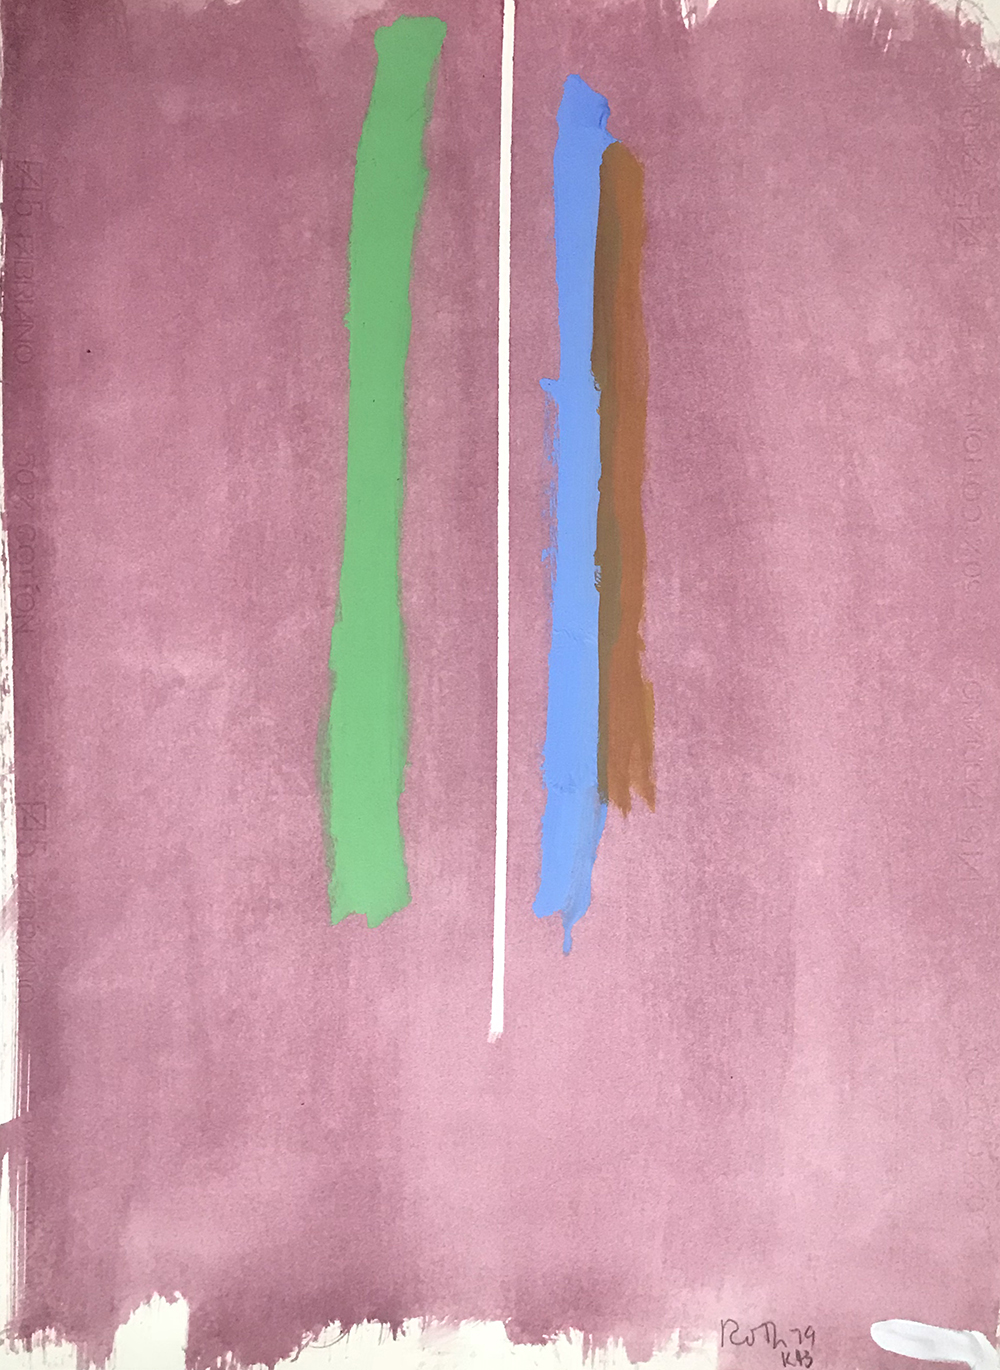 #2670 Untitled,   Acrylic on paper, 1979, 30 x 21 1/2 inches